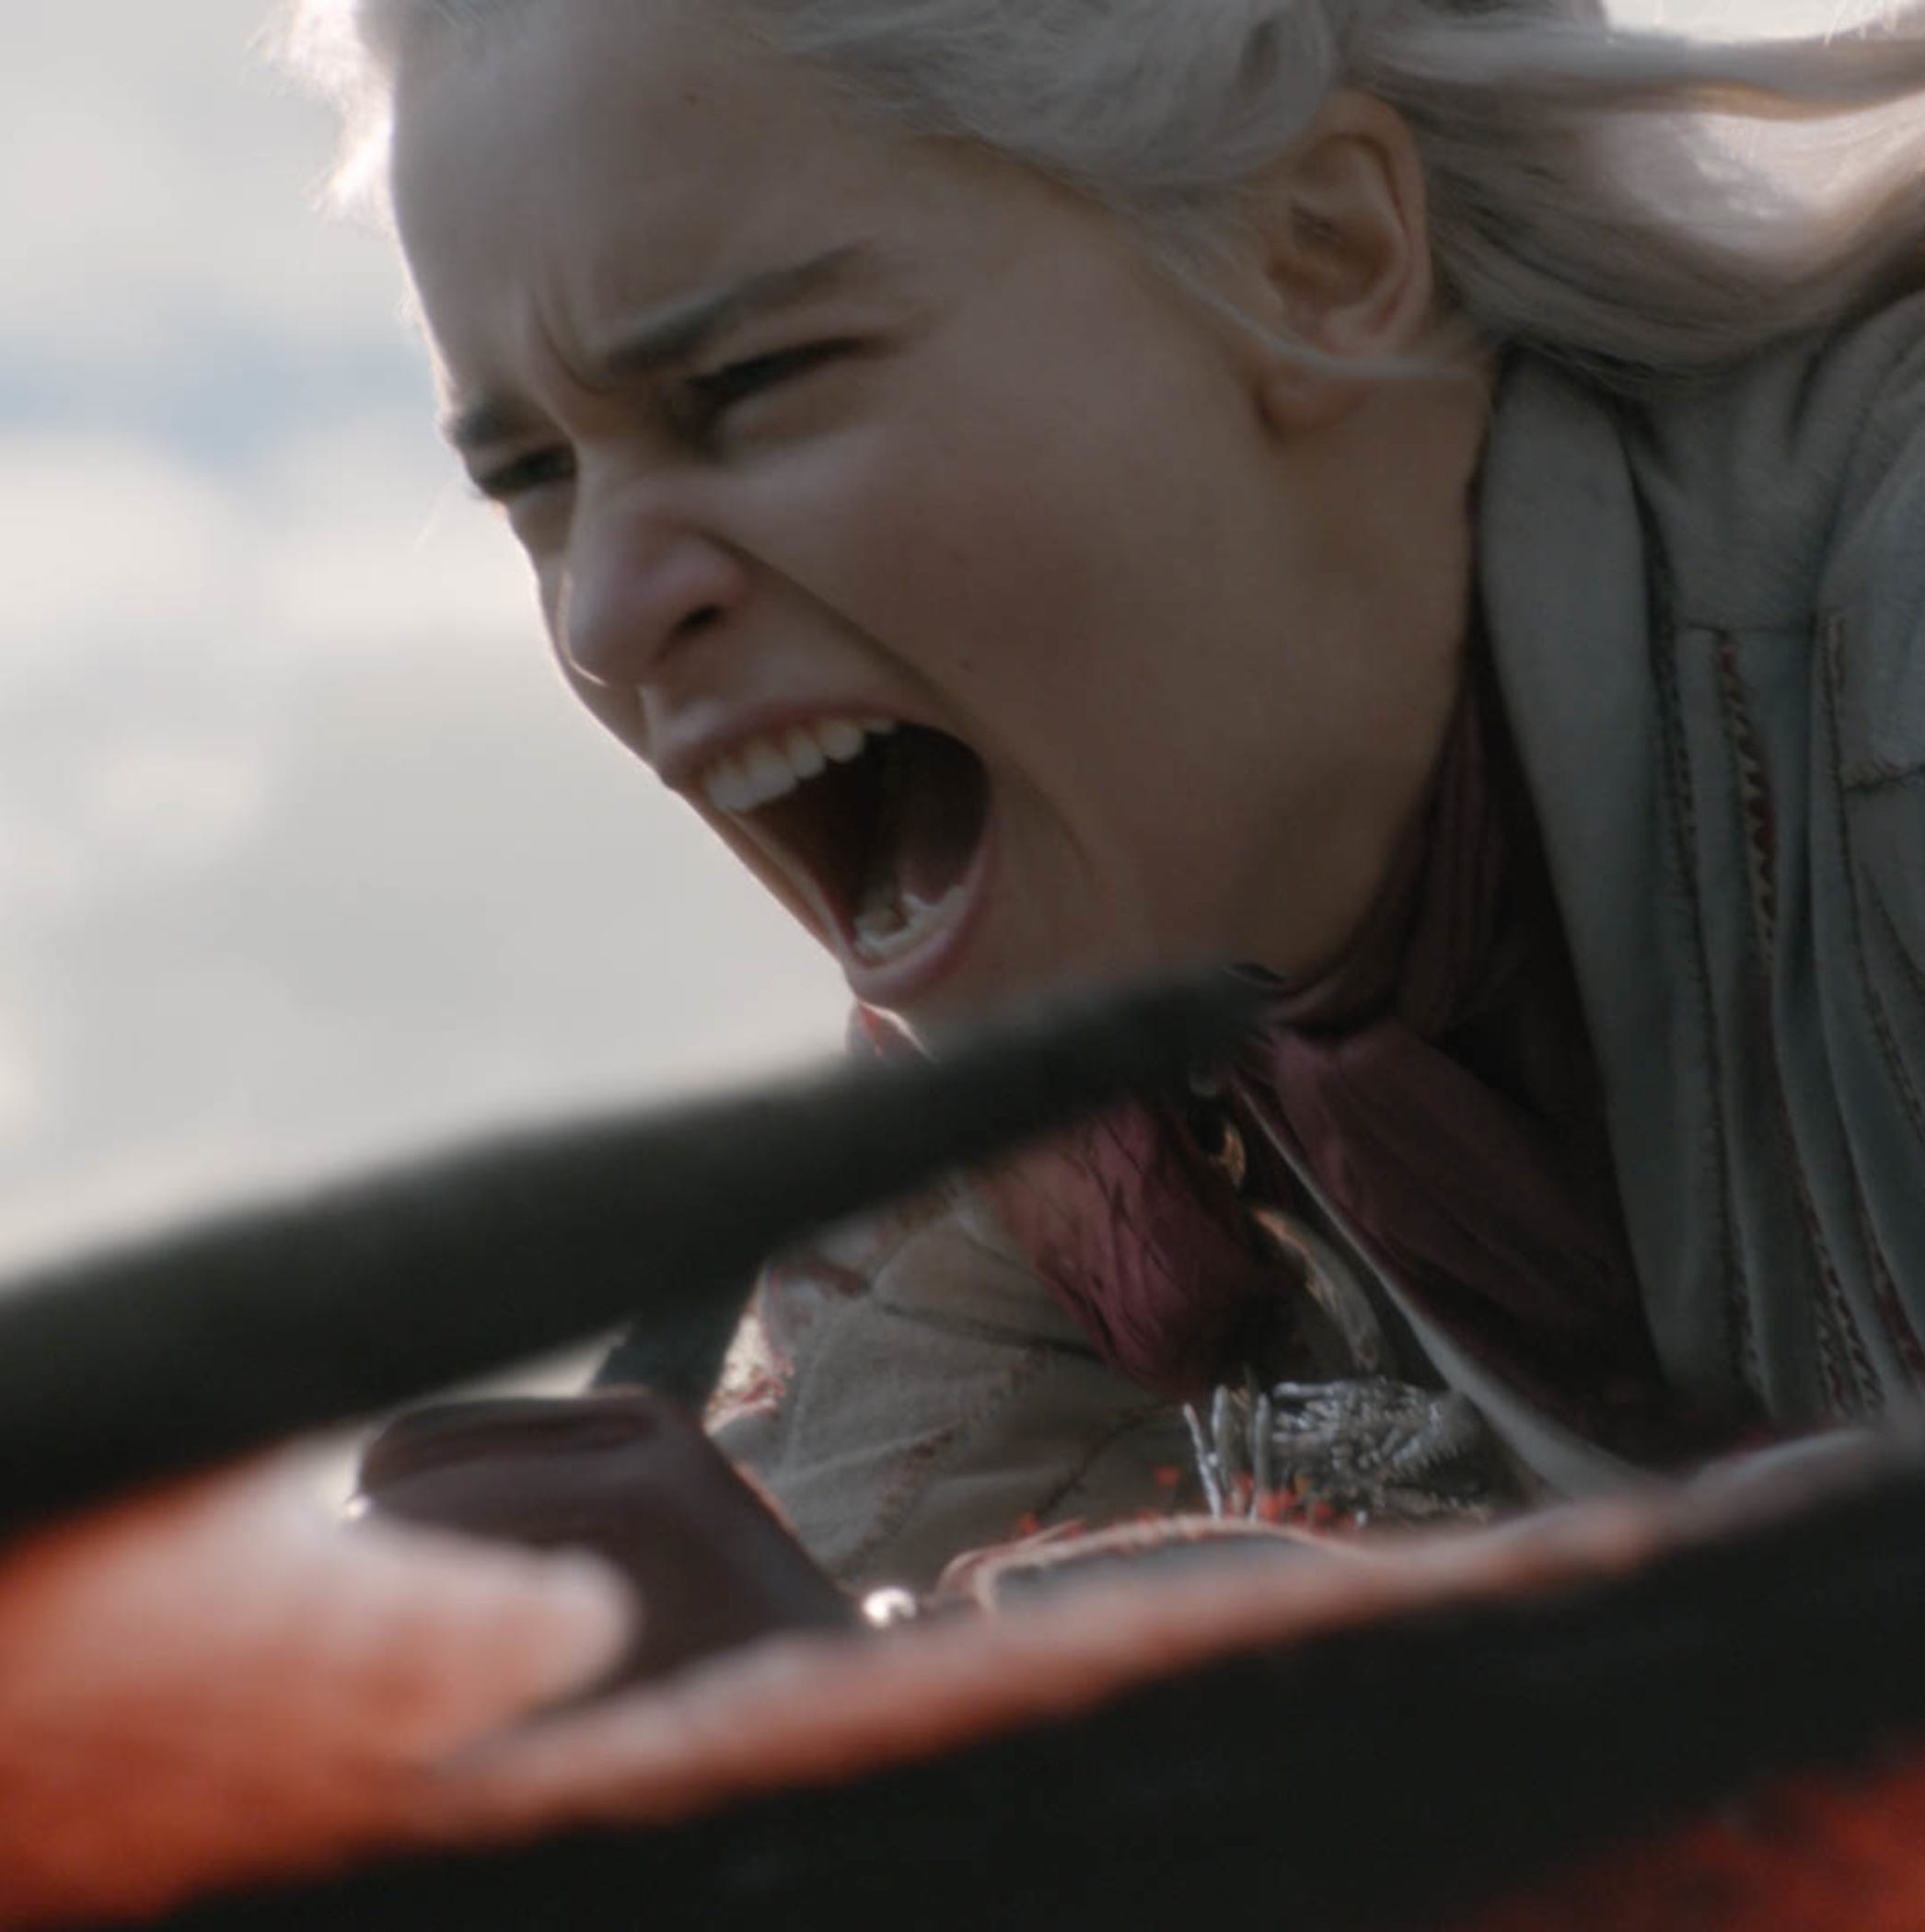 Daenerys Targaryen (Emilia Clarke) is filled with rage at the death of one of her dragons as she rides her last remaining dragon.